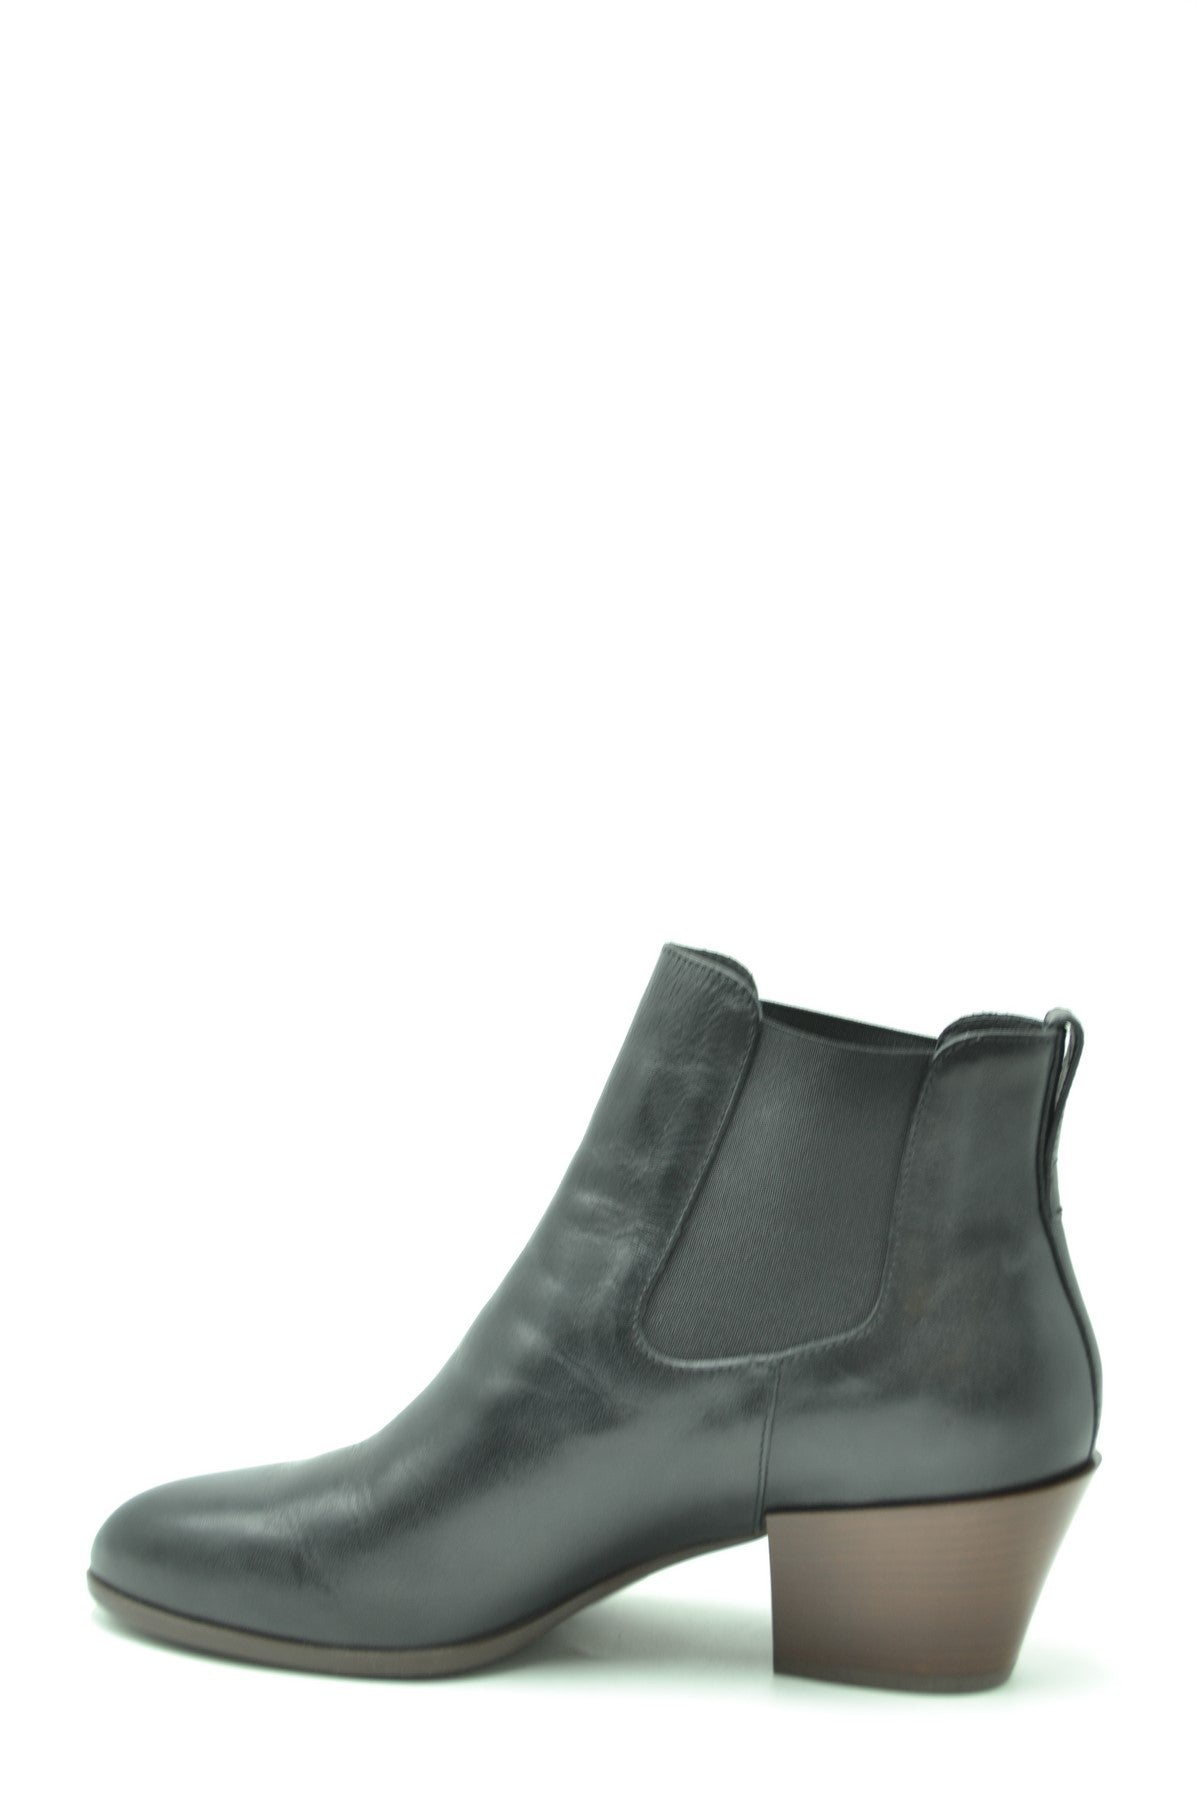 Shoes Hogan-Women's Fashion - Women's Shoes - Women's Boots-Product Details Terms: New With LabelMain Color: BlackType Of Accessory: BootsSeason: Fall / WinterMade In: ItalyGender: WomanHeel'S Height: 5Size: EuComposition: Leather 100%Year: 2020Manufacturer Part Number: Hxw4740W890Lehb999-Keyomi-Sook